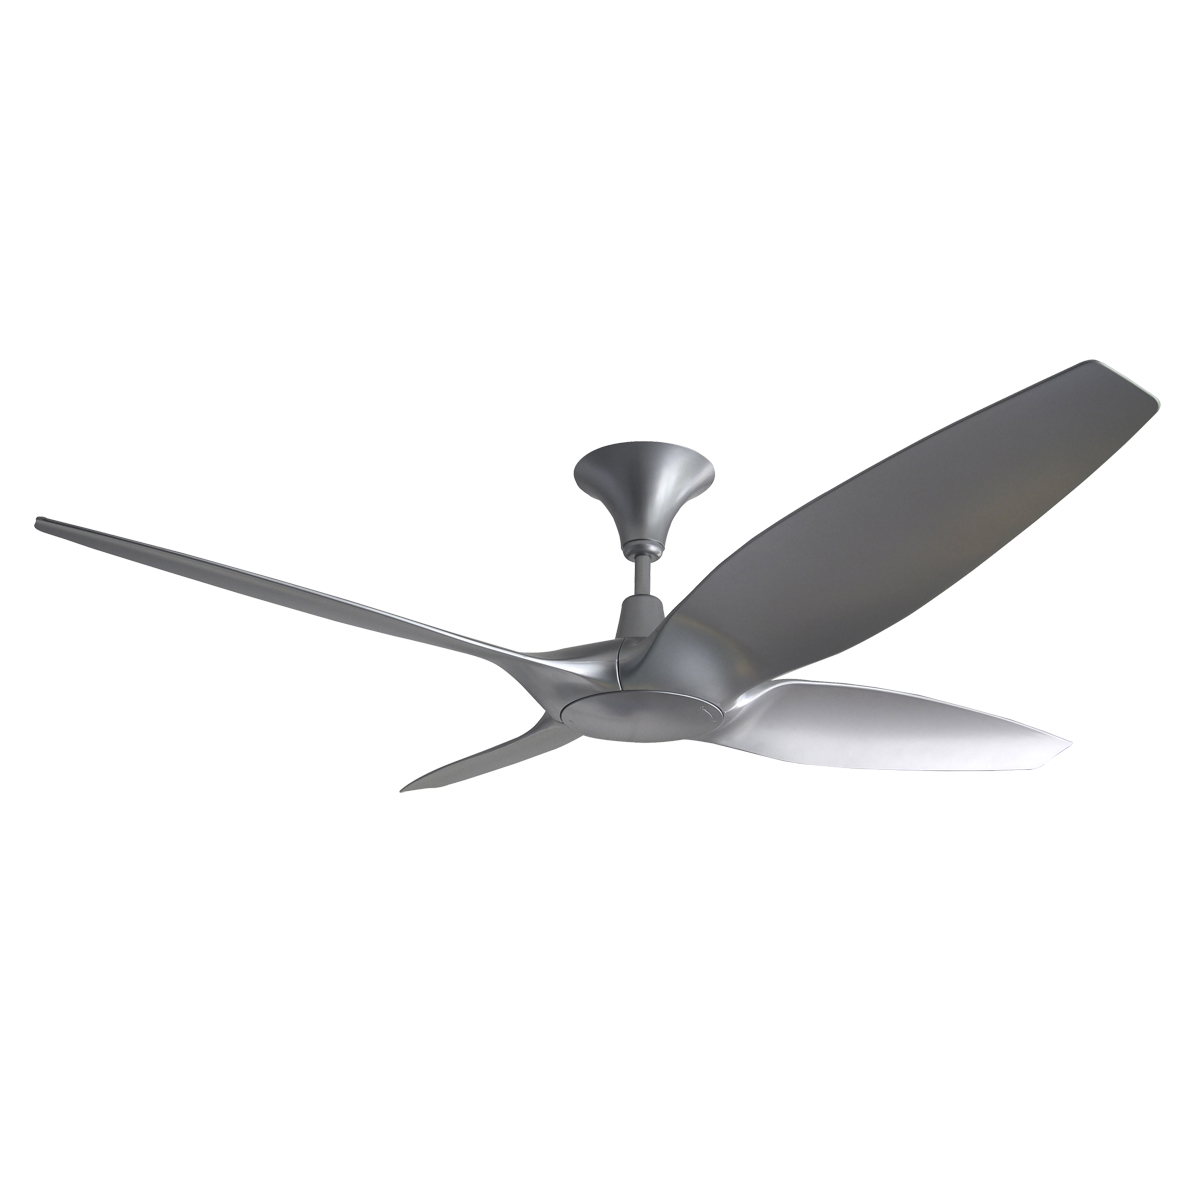 Designer 4 Blade 60 Inch 1524mm Dc Ceiling Fan With Remote Ceiling Fans And Leds